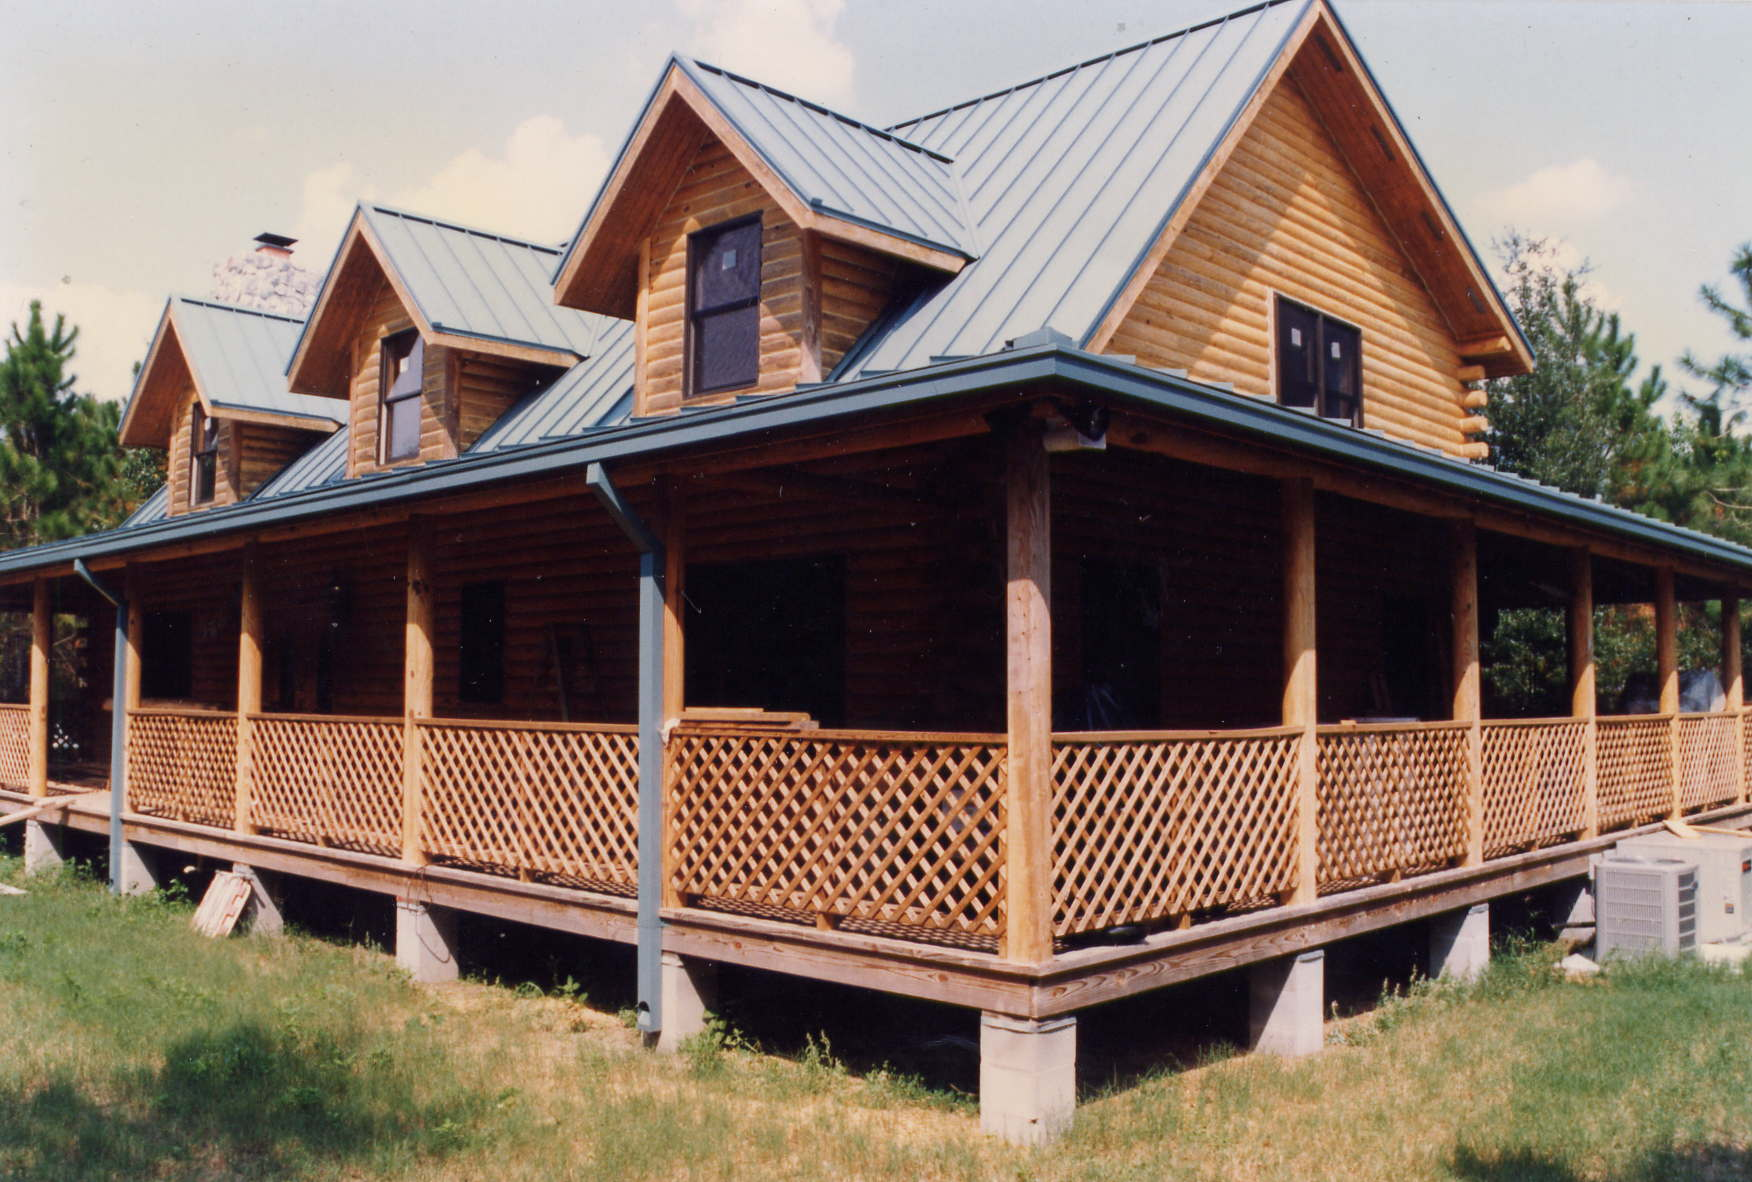 Wood Country Home Style With Wrap Around Porches Equipped With Wood Lattice  Railing System